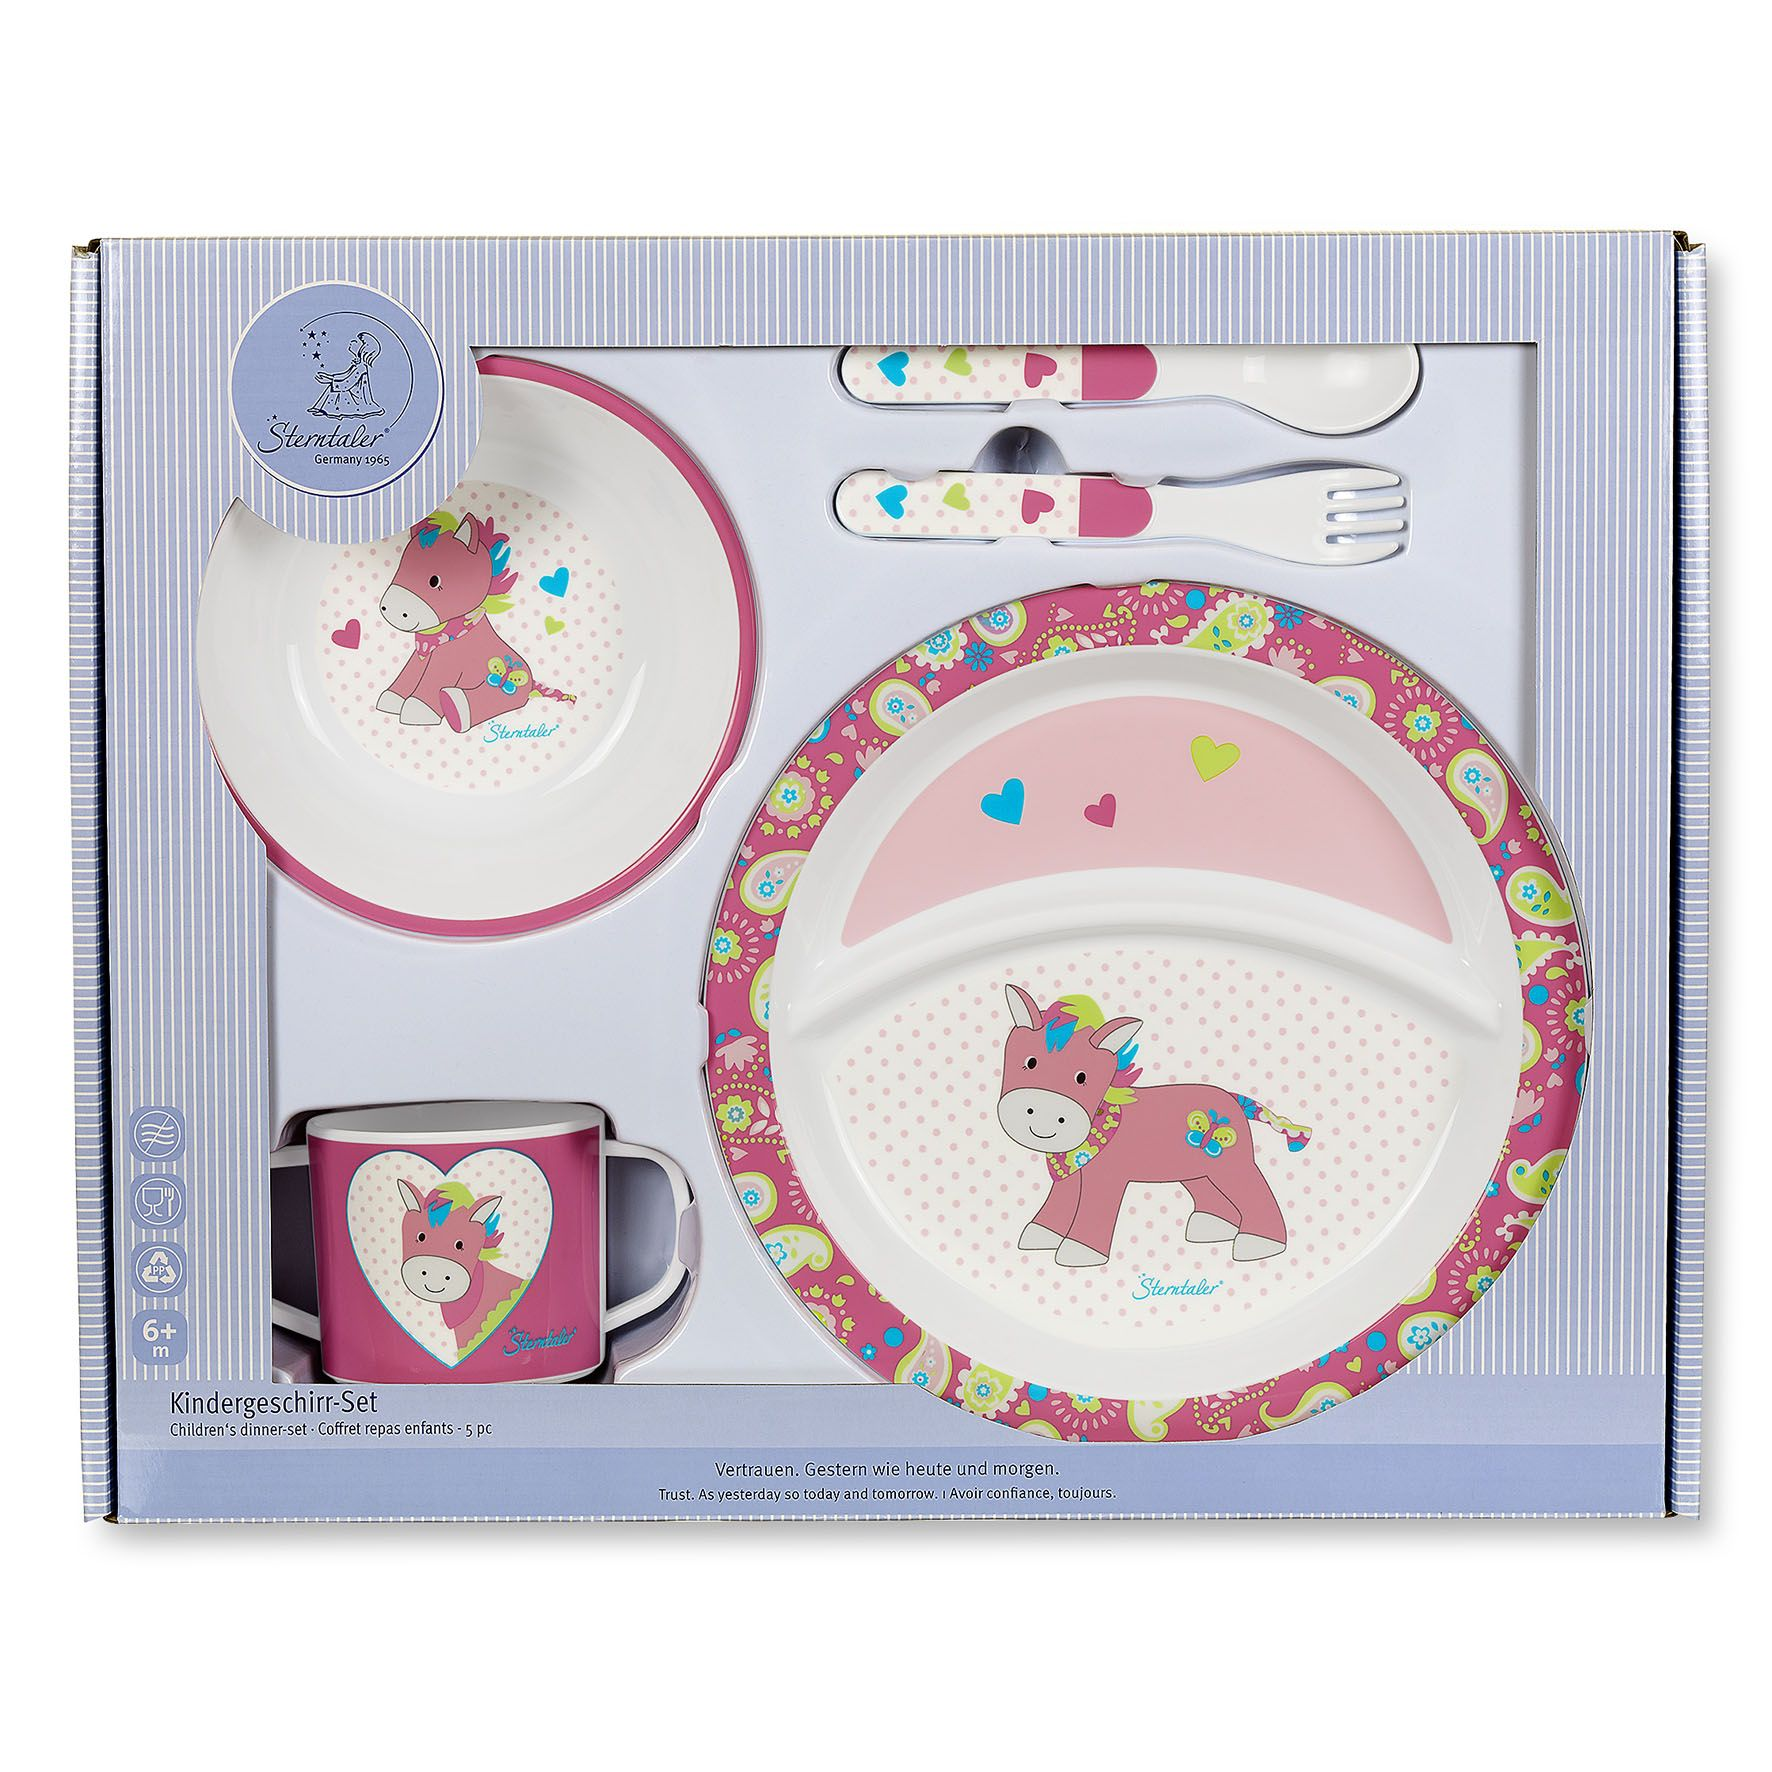 Sterntaler Childrens crockery set Peggy 2017 - large image 1 ...  sc 1 st  Baby products online store - worldwide shipping & Sterntaler Childrens crockery set 2017 Peggy - Buy at kidsroom ...